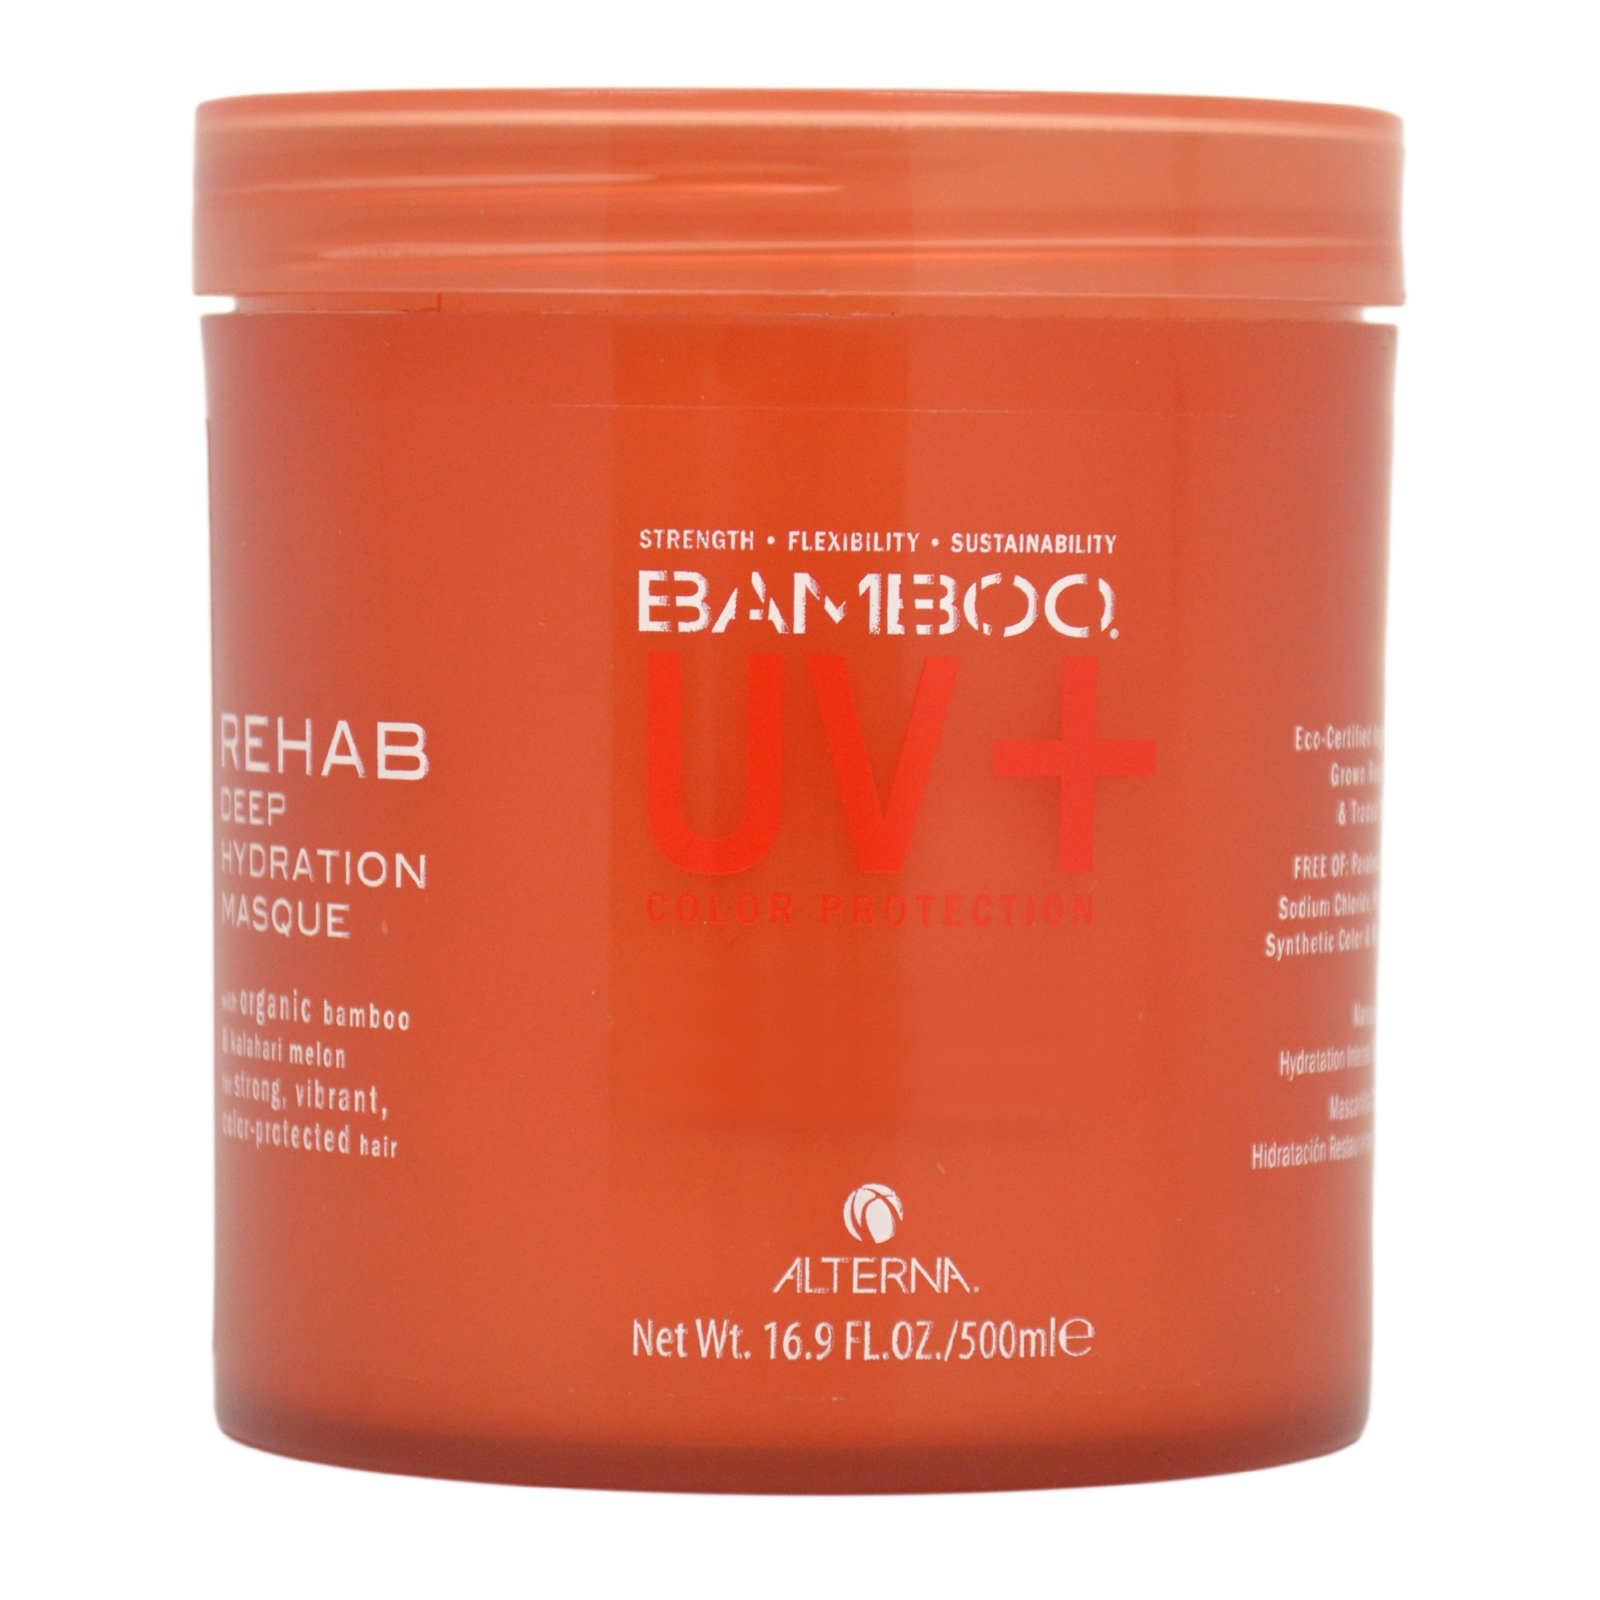 Alterna Bamboo Color Hold+ Color Protection Rehab Deep Hydration Masque (For Strong, Vibrant, Color Protected Hair) 500ml/16.9oz PartNumber: 038V005384406000P